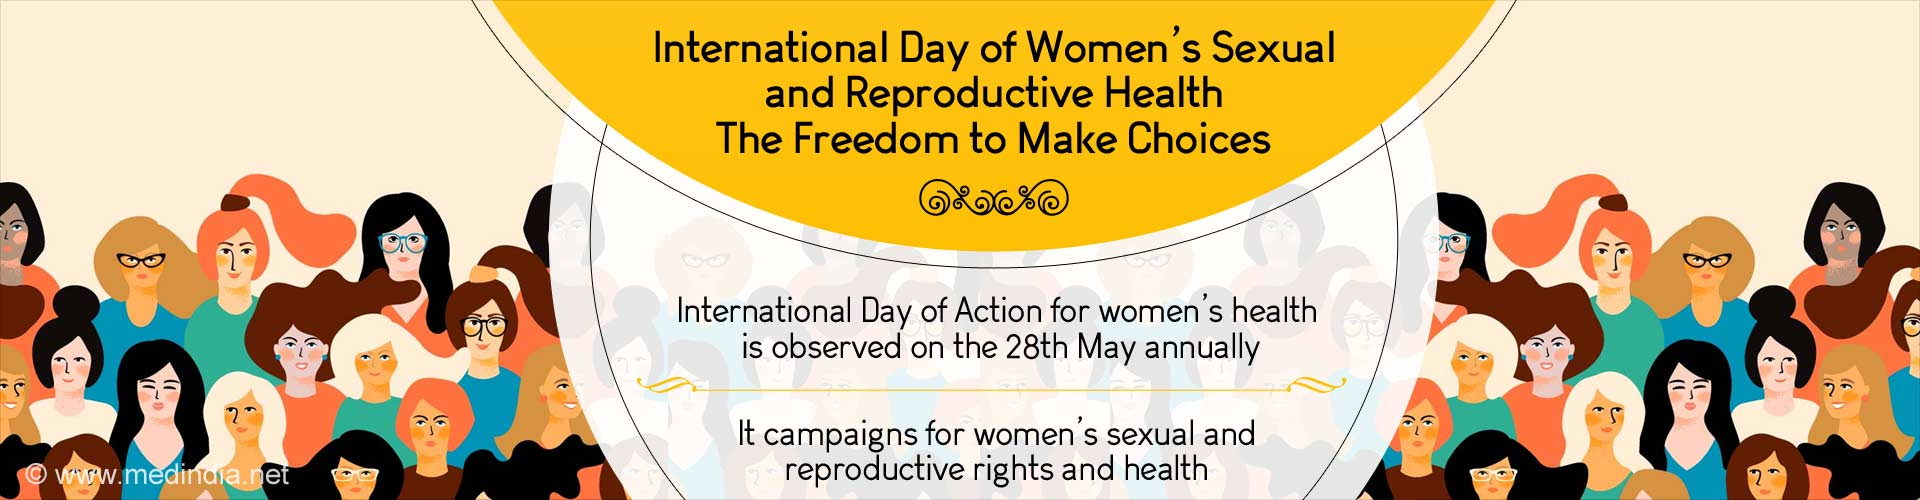 International Day of Action for Women's Health - Educating and Empowering Women